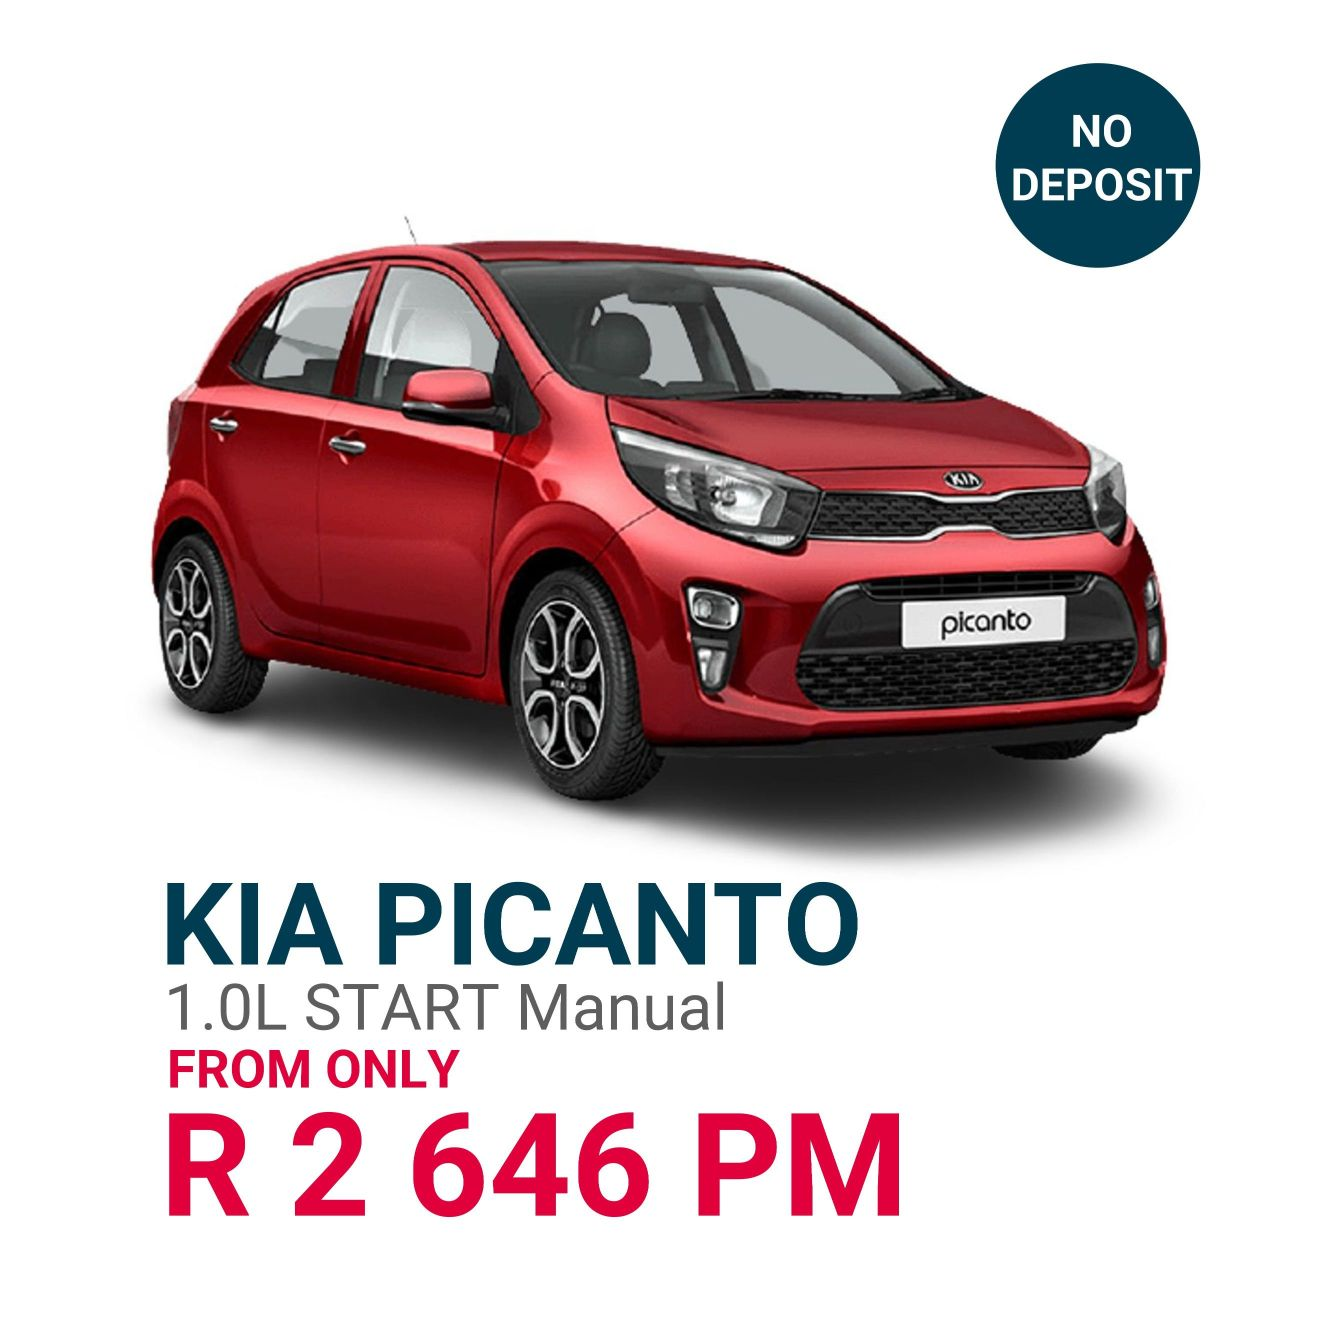 kia-picanto-start-from-only-r2-646pm